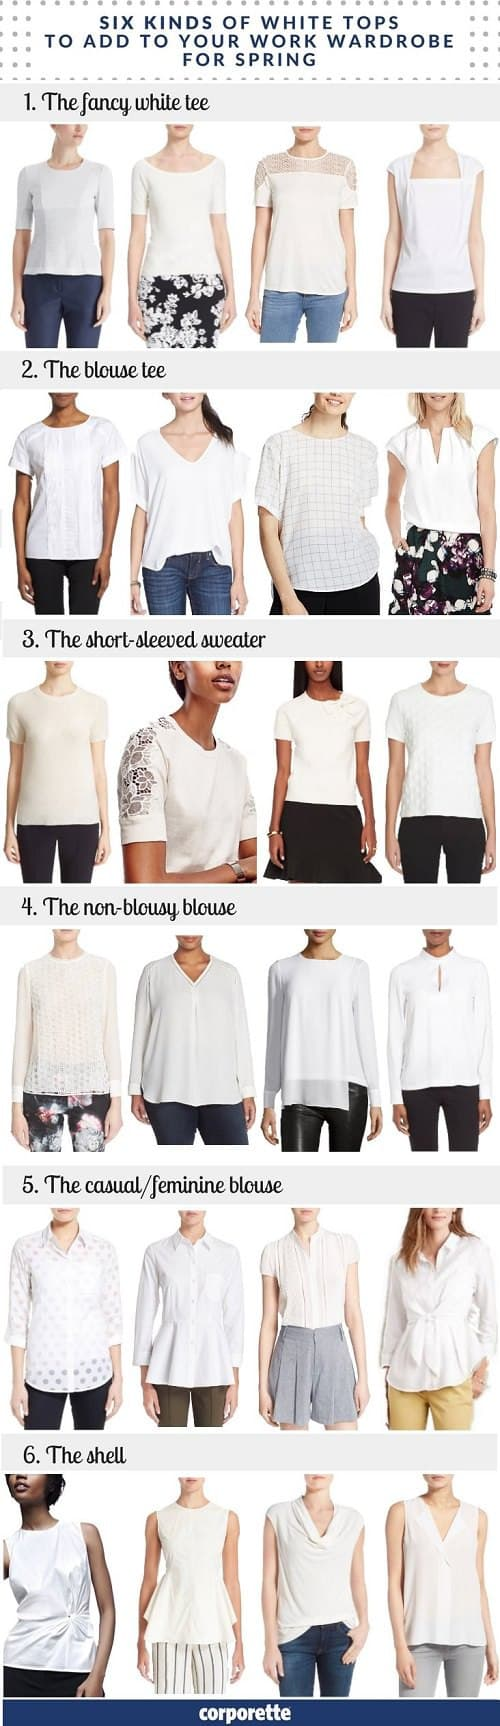 I mostly consider black to be my base for my work wear -- but even I love a white top for spring; they have a way of freshening up your entire work wardrobe and making all of your work outfits that much crisper and lighter! These are the six tops every career woman should consider adding to her wardrobe in spring -- great for wearing under suits, layering under cardigans, and adding as a simple topper to skirts and trousers.